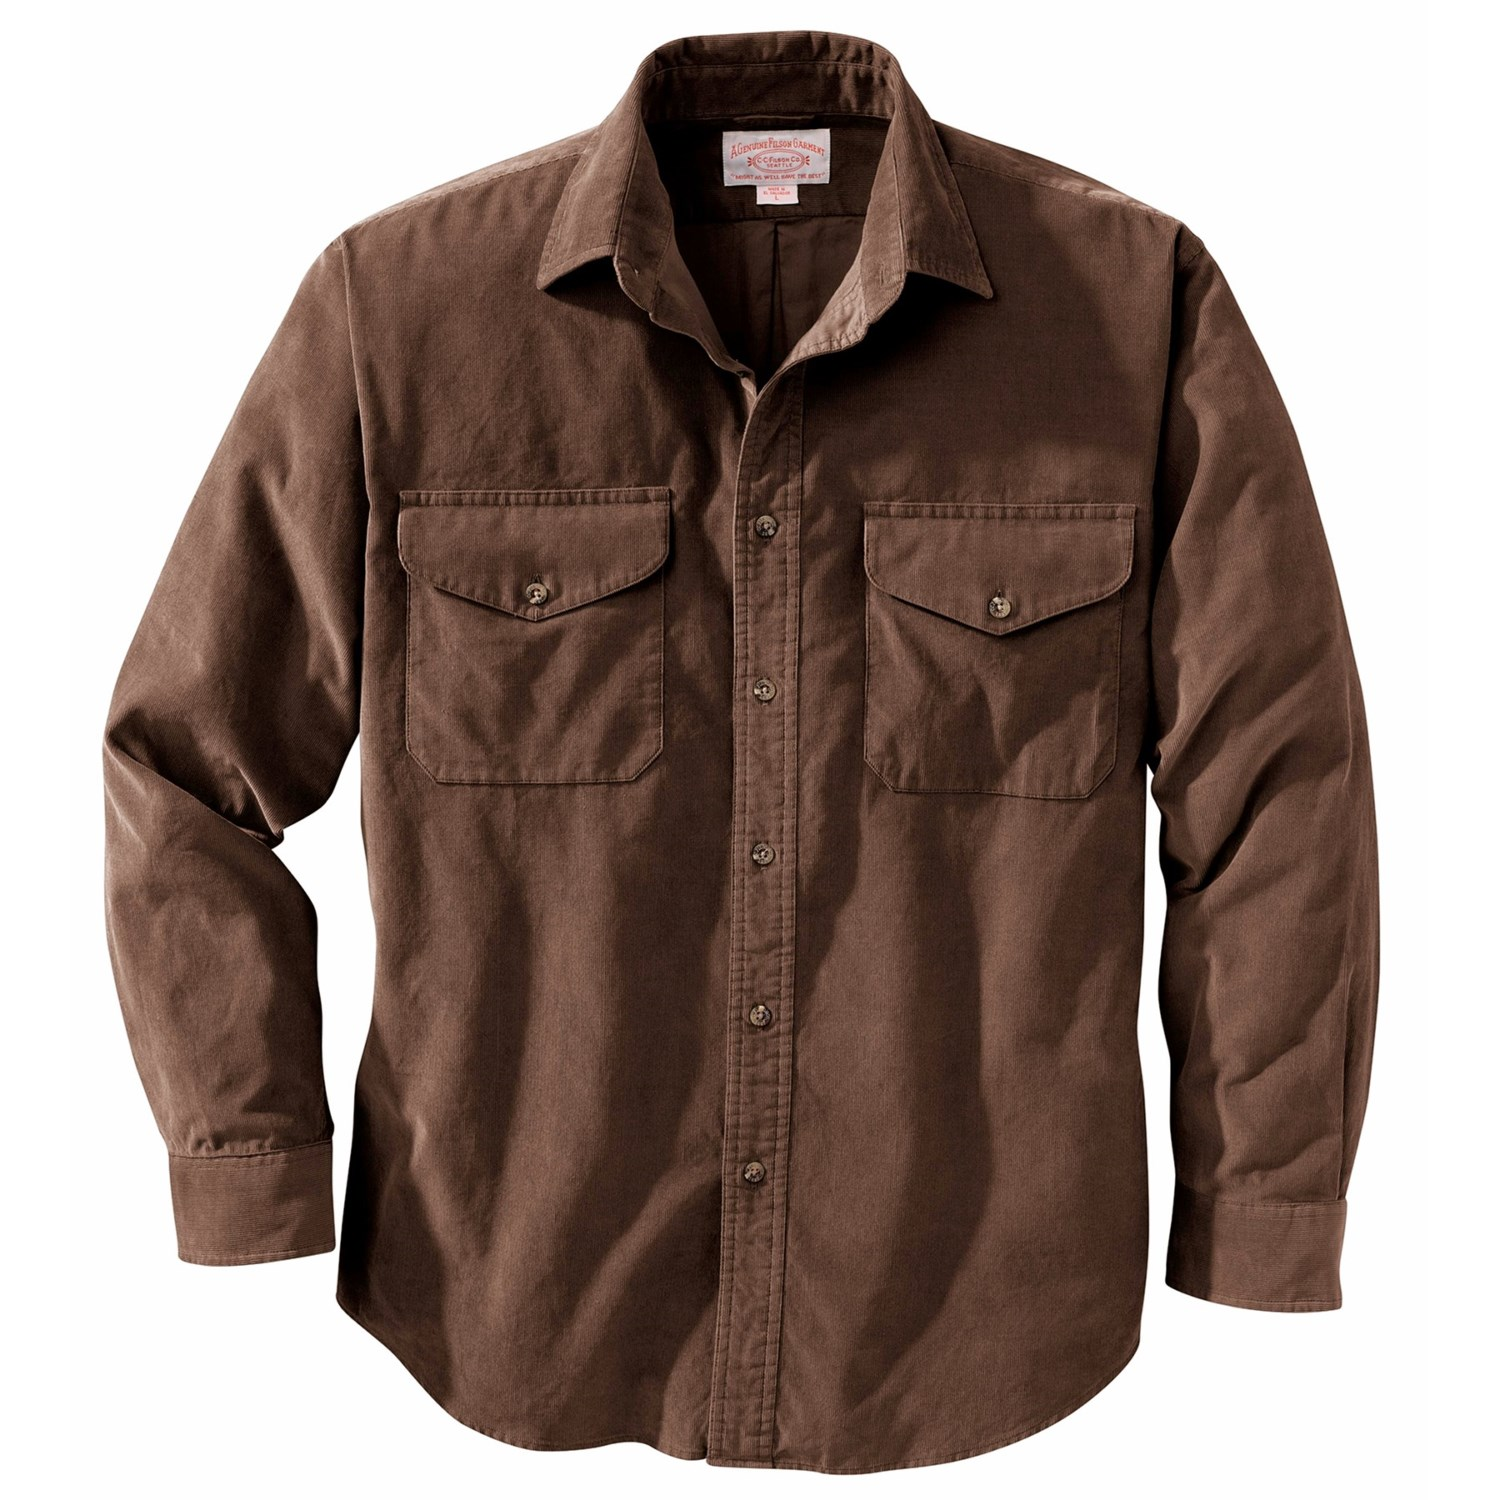 Work Shirts For Men In Construction Images Diabetes T